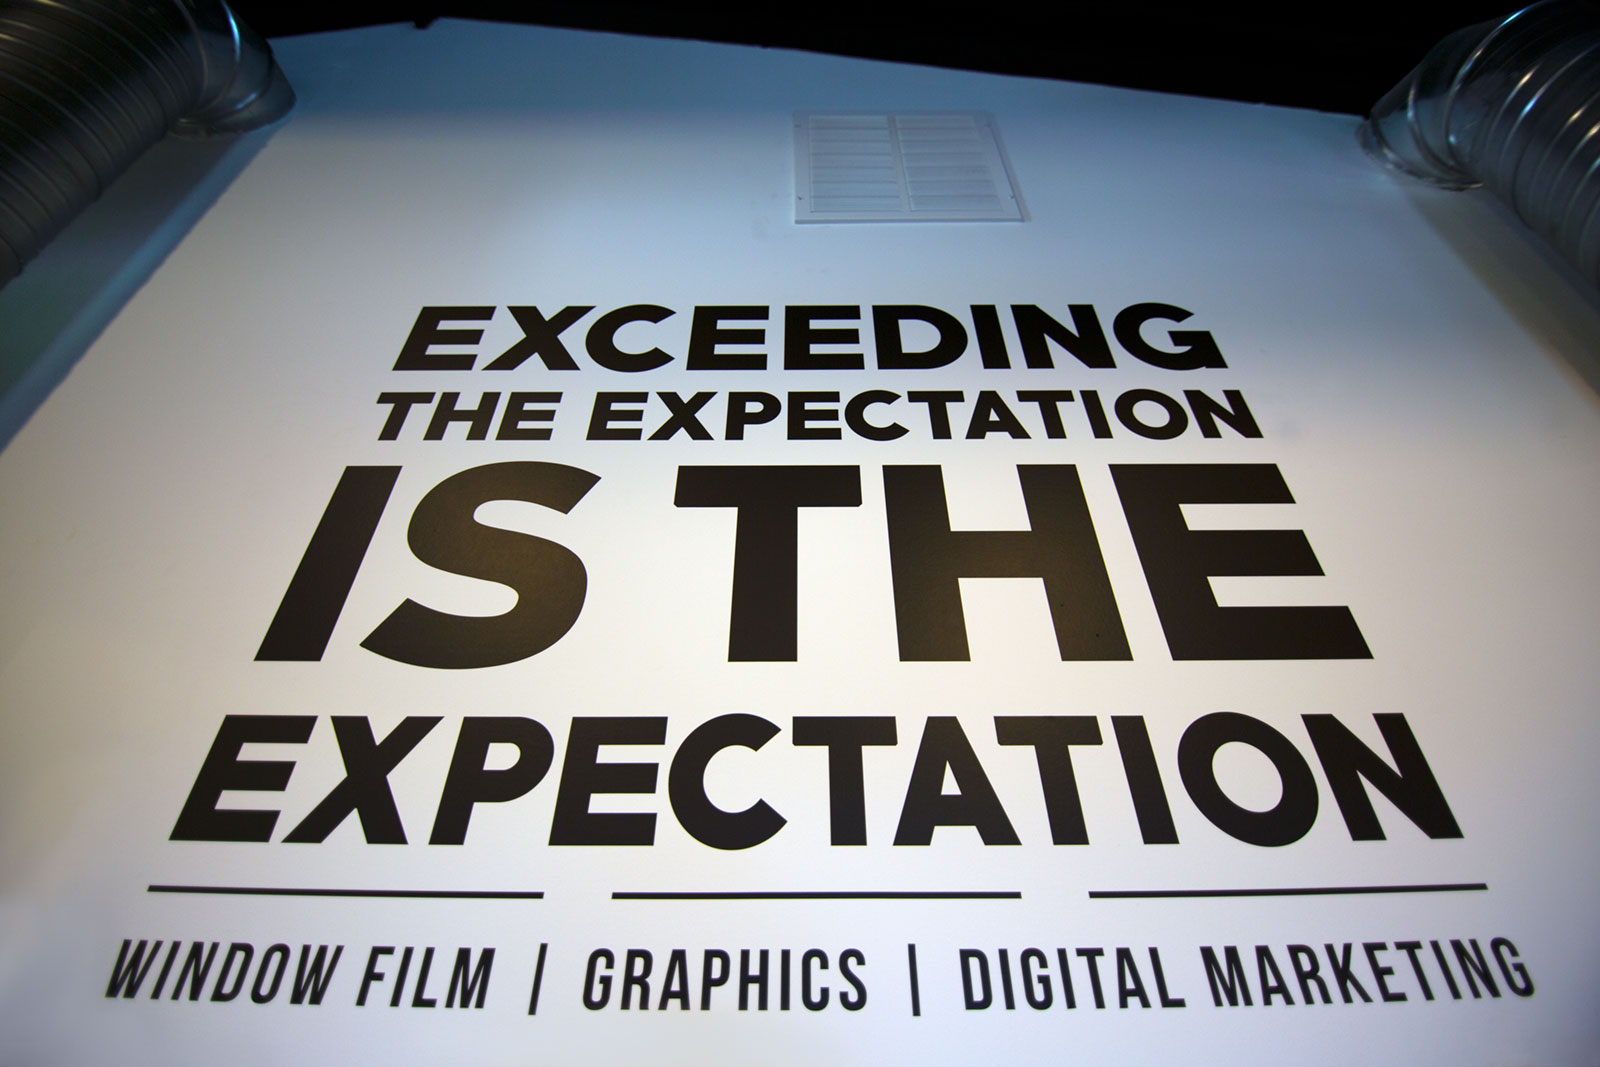 Exceeding the expectation is the expectation